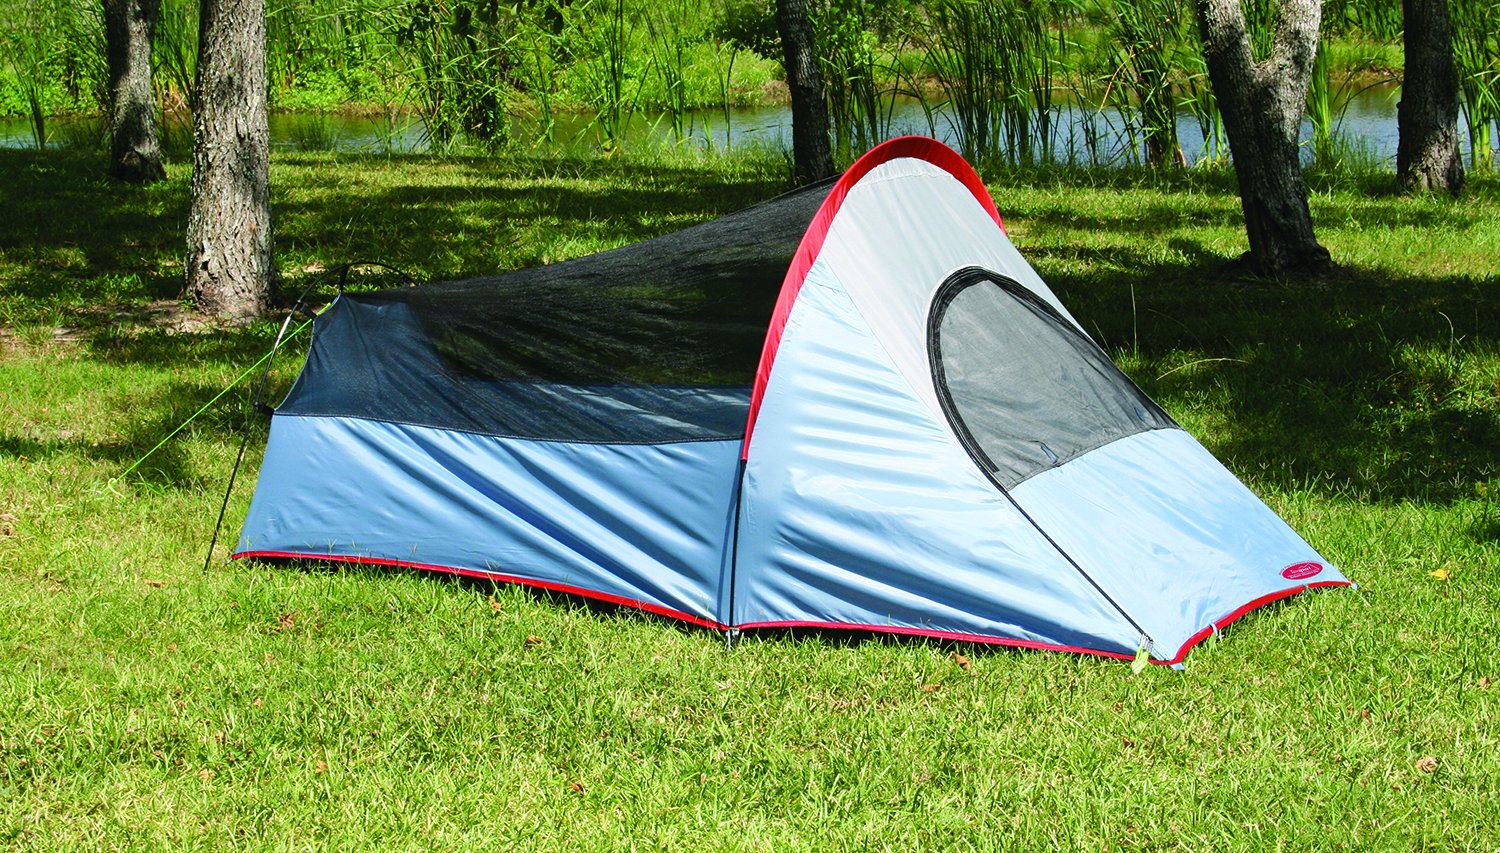 Amazon.com  Texsport Saguaro Single Person Personal Bivy Shelter Tent for Backpacking Hiking C&ing  Sports u0026 Outdoors & Amazon.com : Texsport Saguaro Single Person Personal Bivy Shelter ...